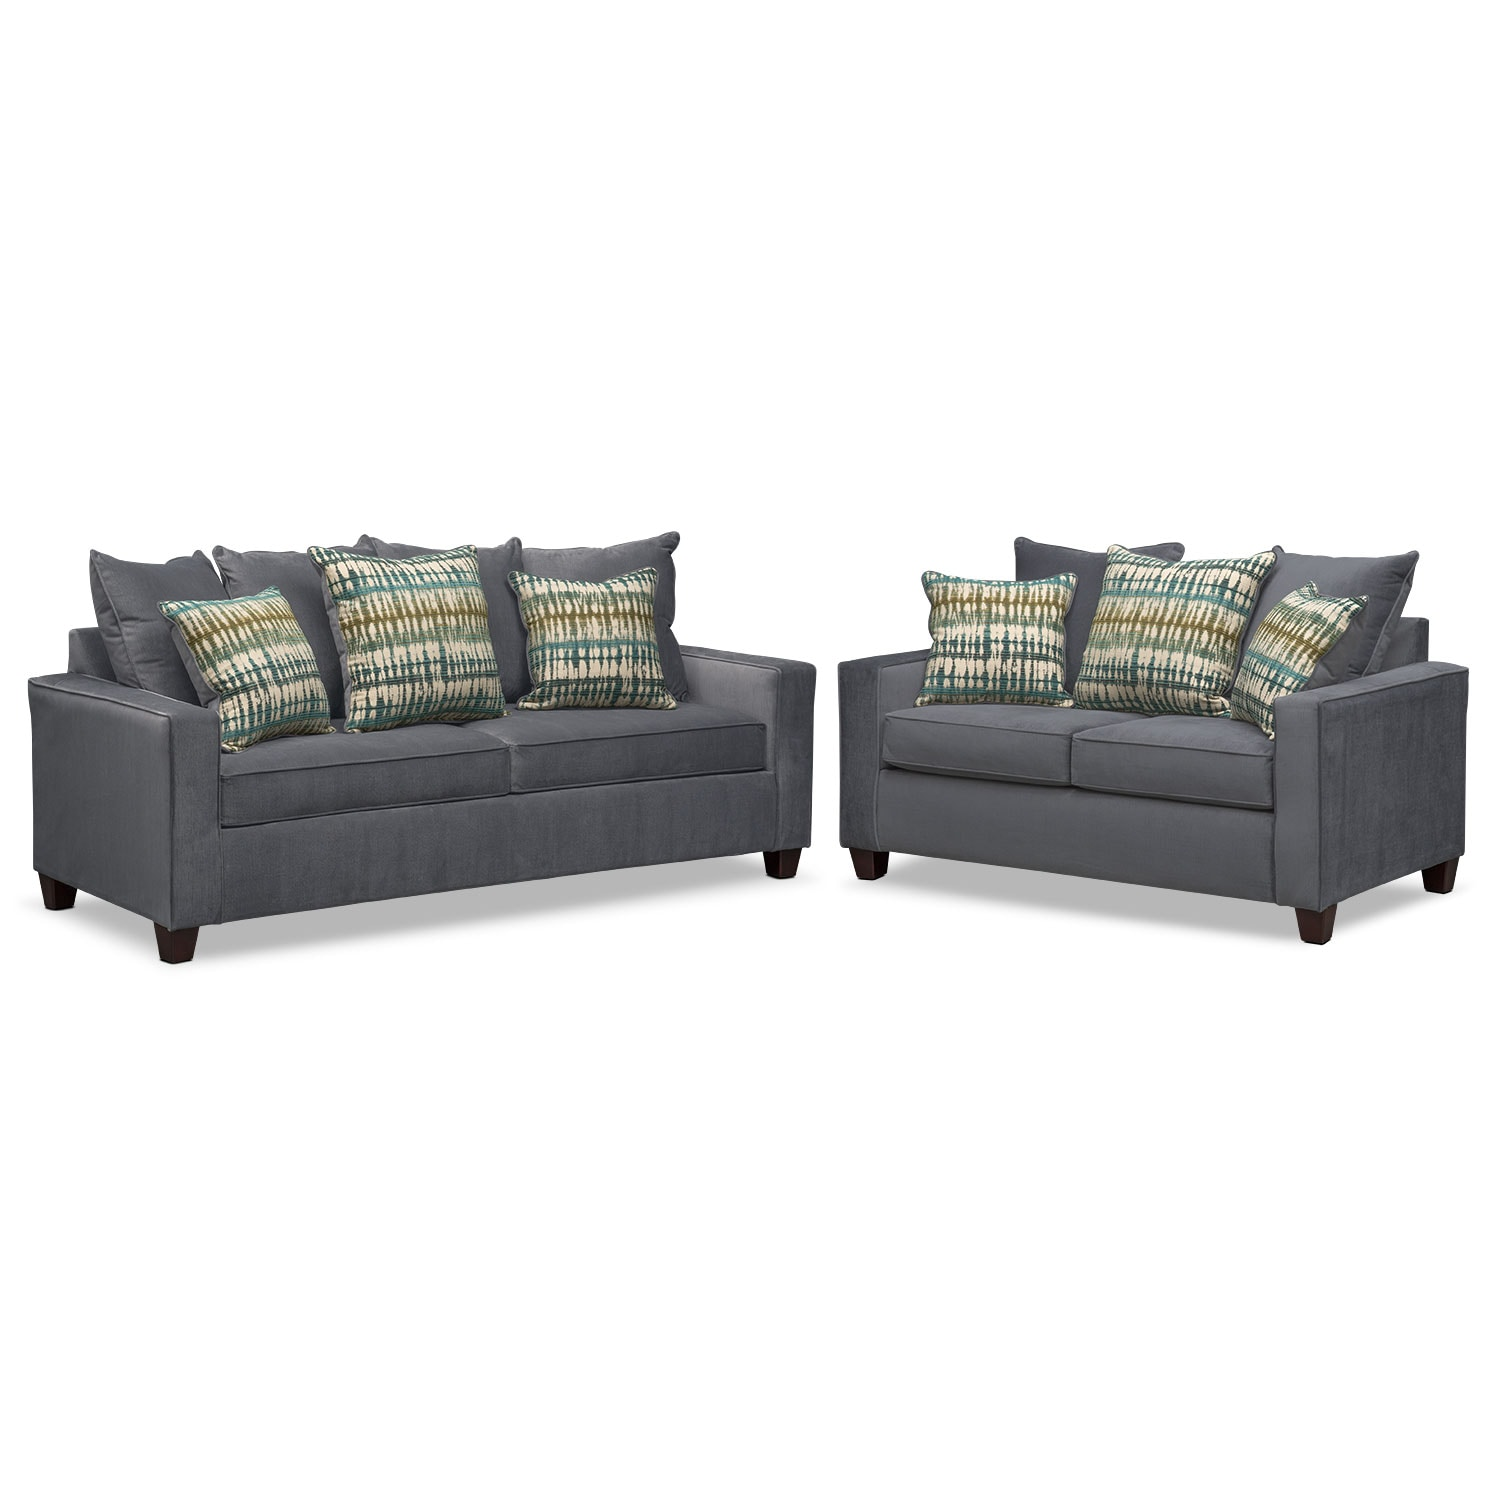 Bryden Sofa And Loveseat Set Slate American Signature Furniture